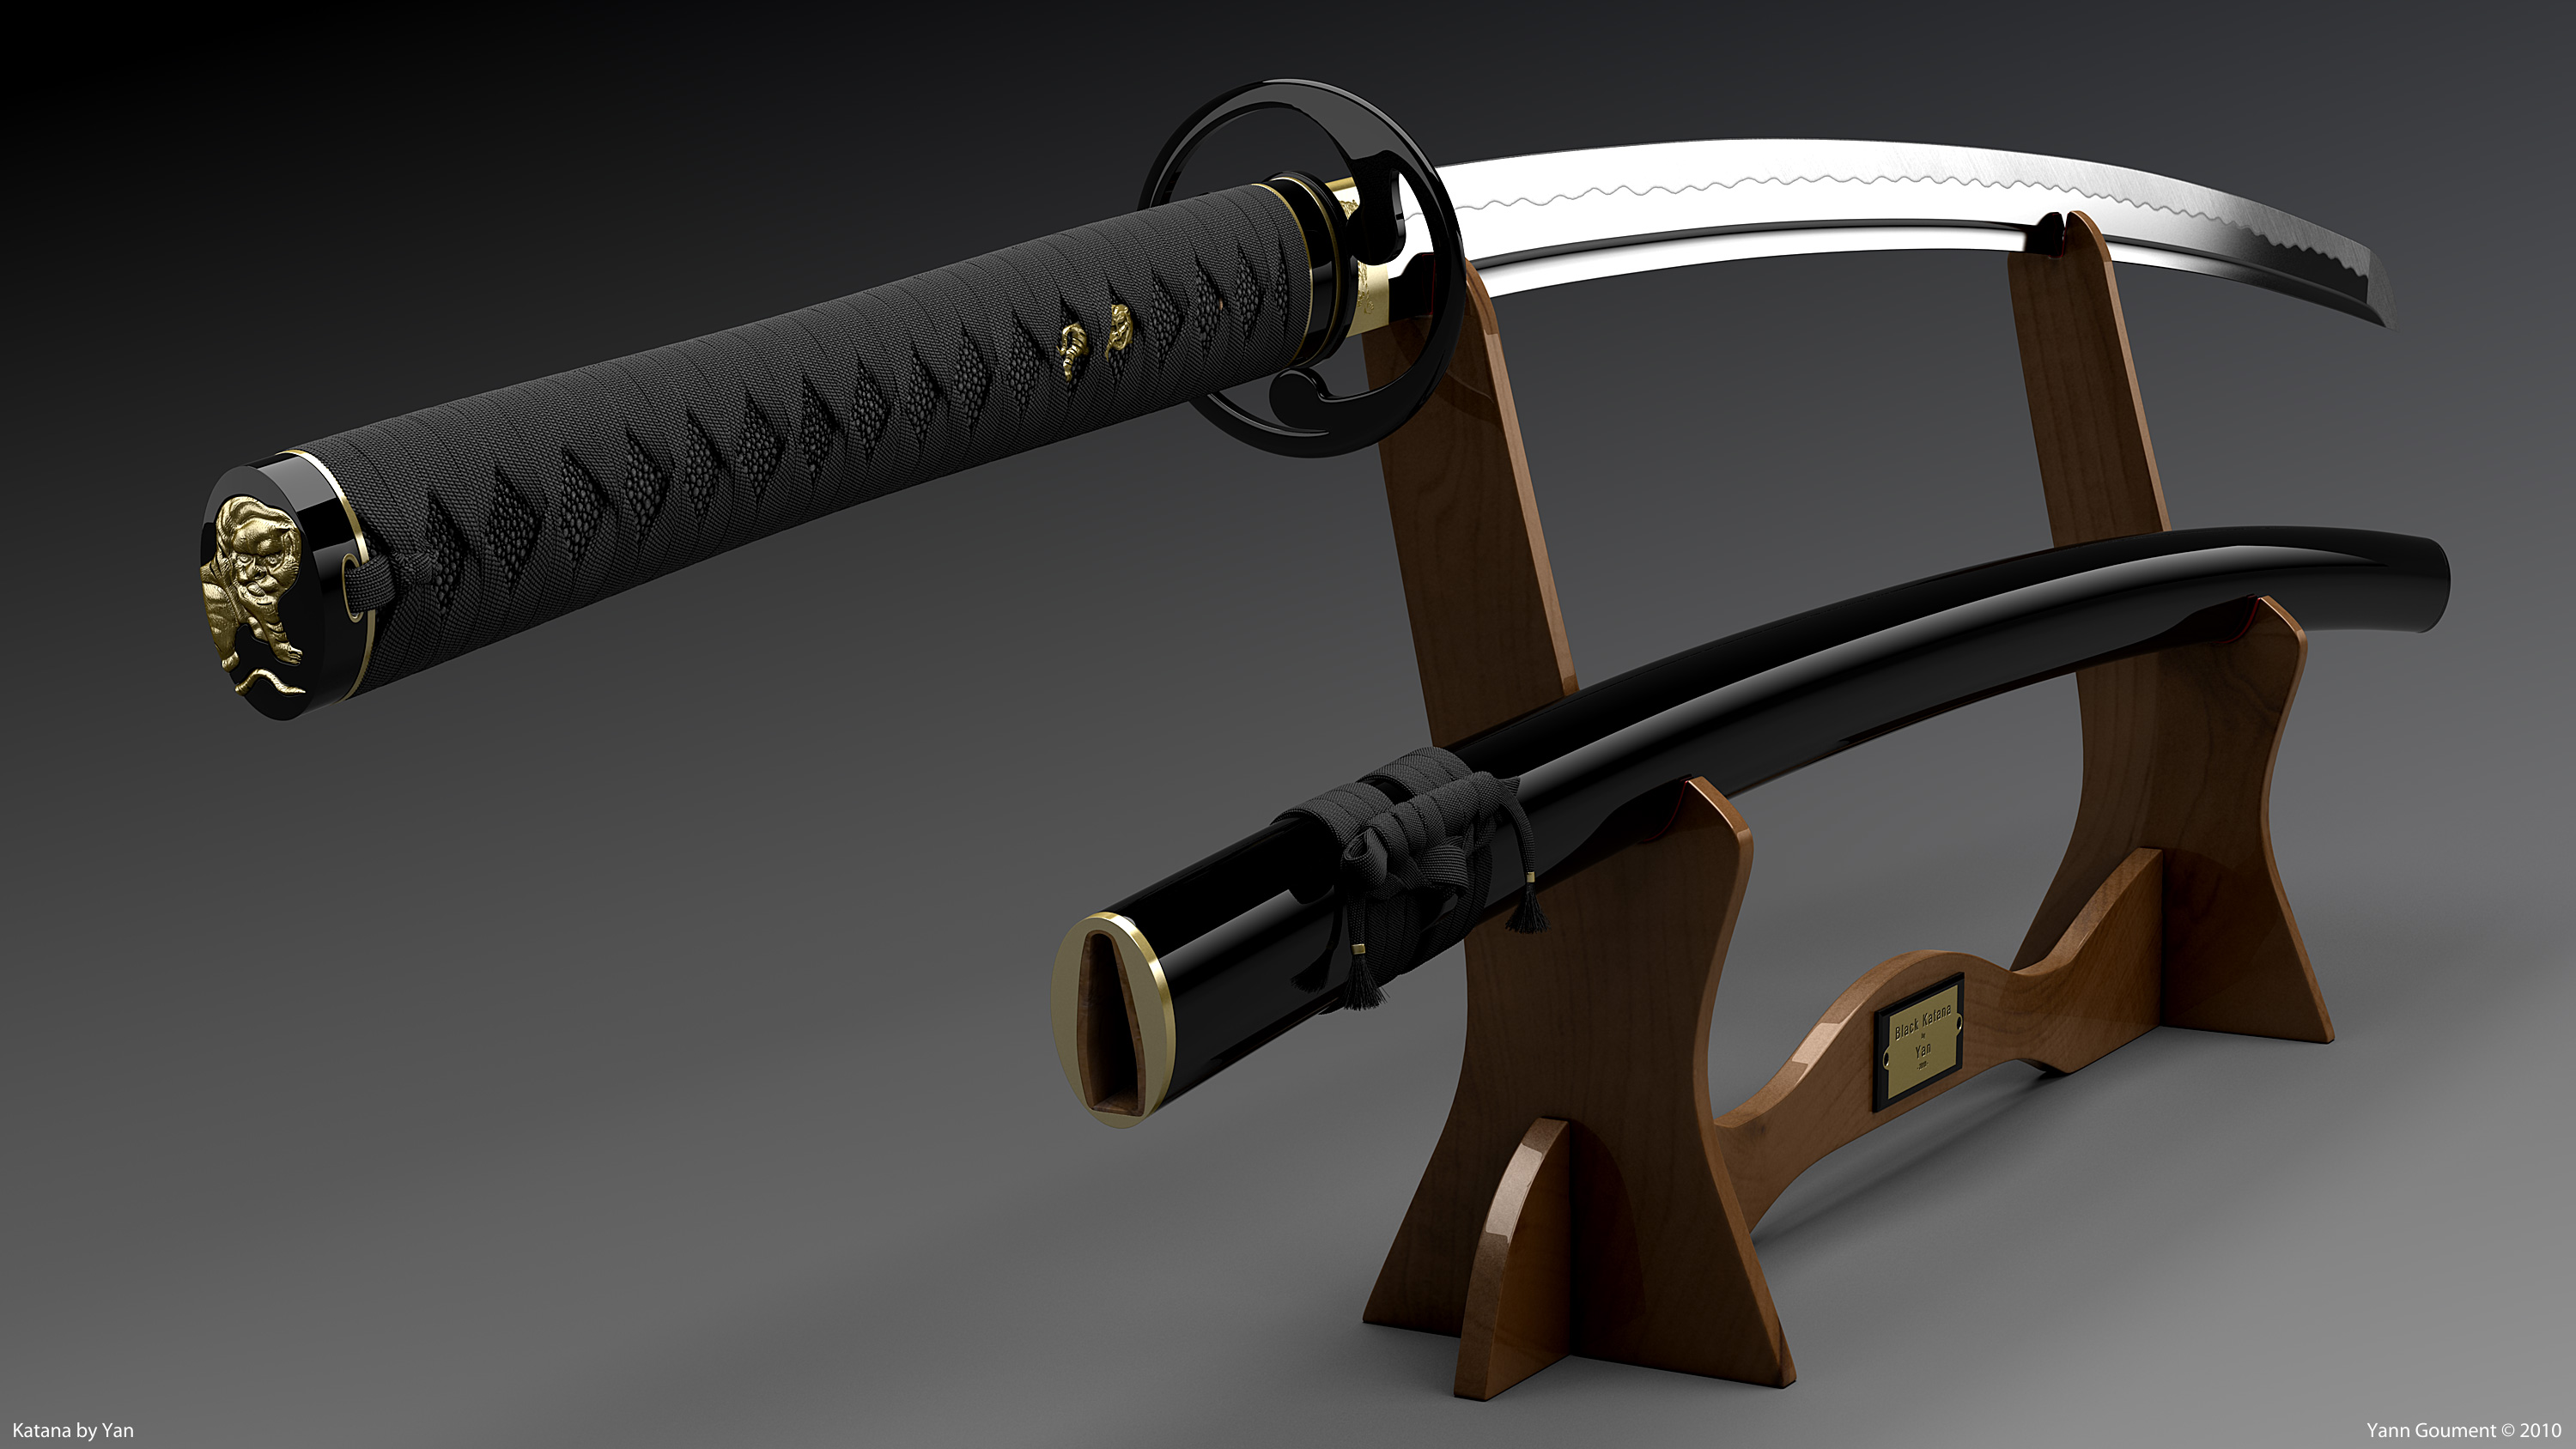 samurai katana wallpaper hd - photo #15